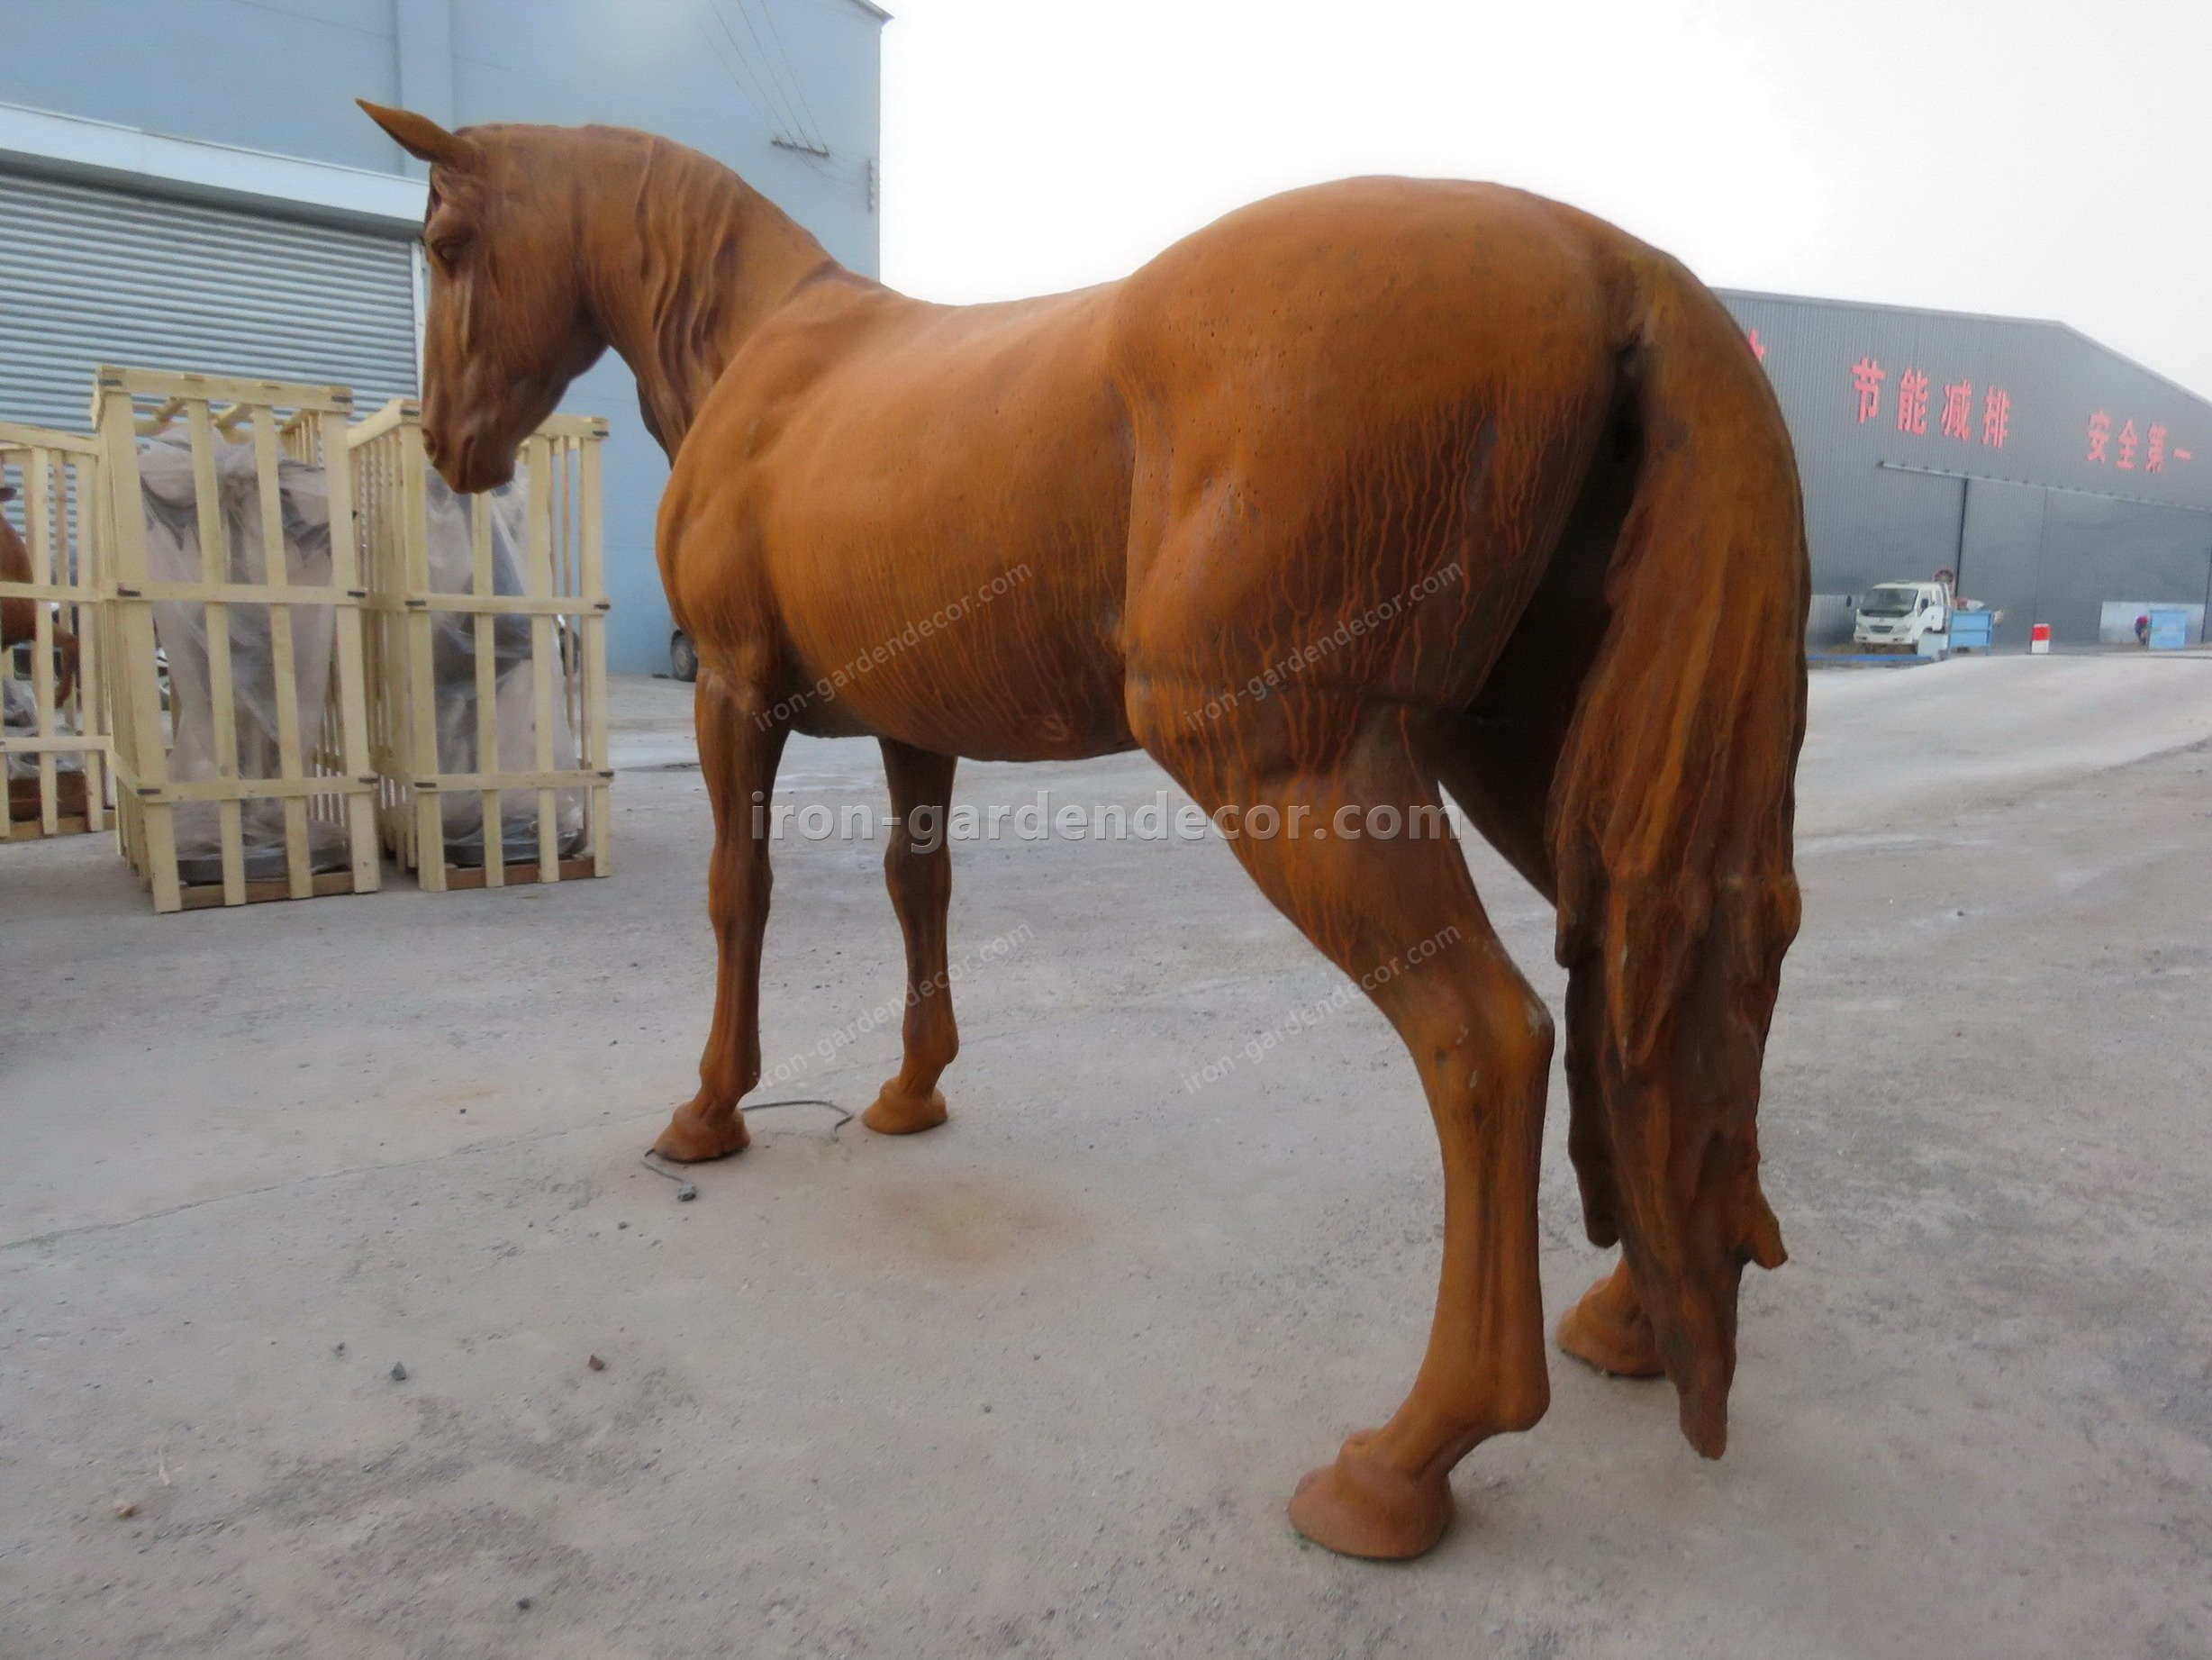 normal size cast iron animal of horse garden animal, large horse animal-SS6027 (12)